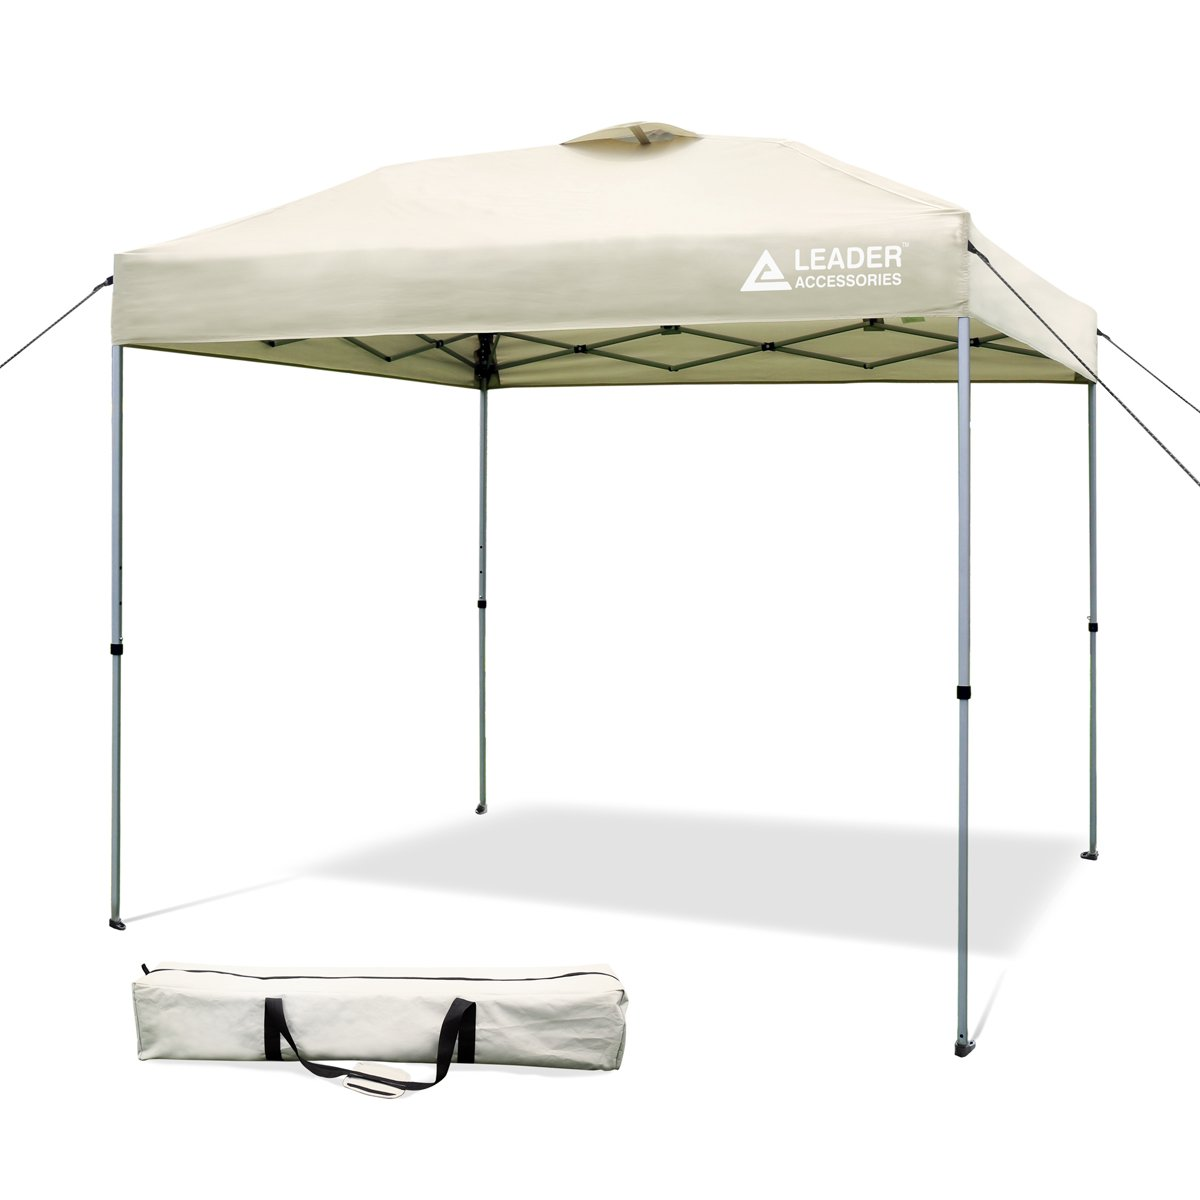 Leader Accessories 8' x 8' Straight Wall Instant Canopy with Carry Bag 8' x 8' Straight Wall Instant Canopy with Carry Bag (Beige)